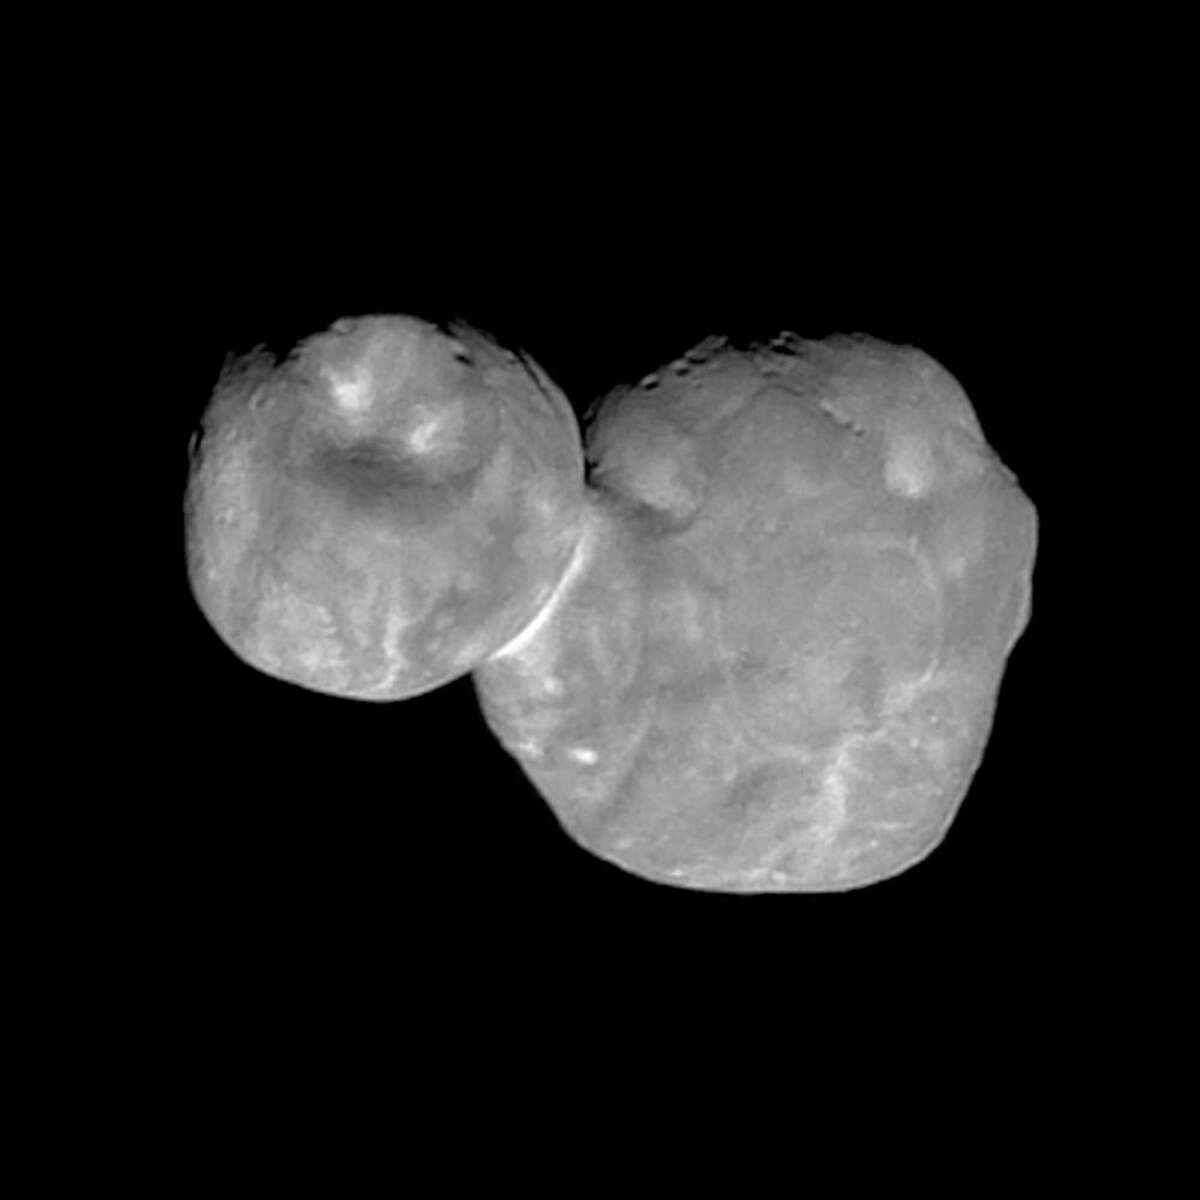 Ultima Thule, about 1 billion miles beyond Pluto, encountered in the Kuiper Belt by the New Horizons spacecraft in January. It was created by two objects that touched and stuck together. (NASA/Johns Hopkins University Applied Physics Laboratory/Southwest Research Institute via AP)